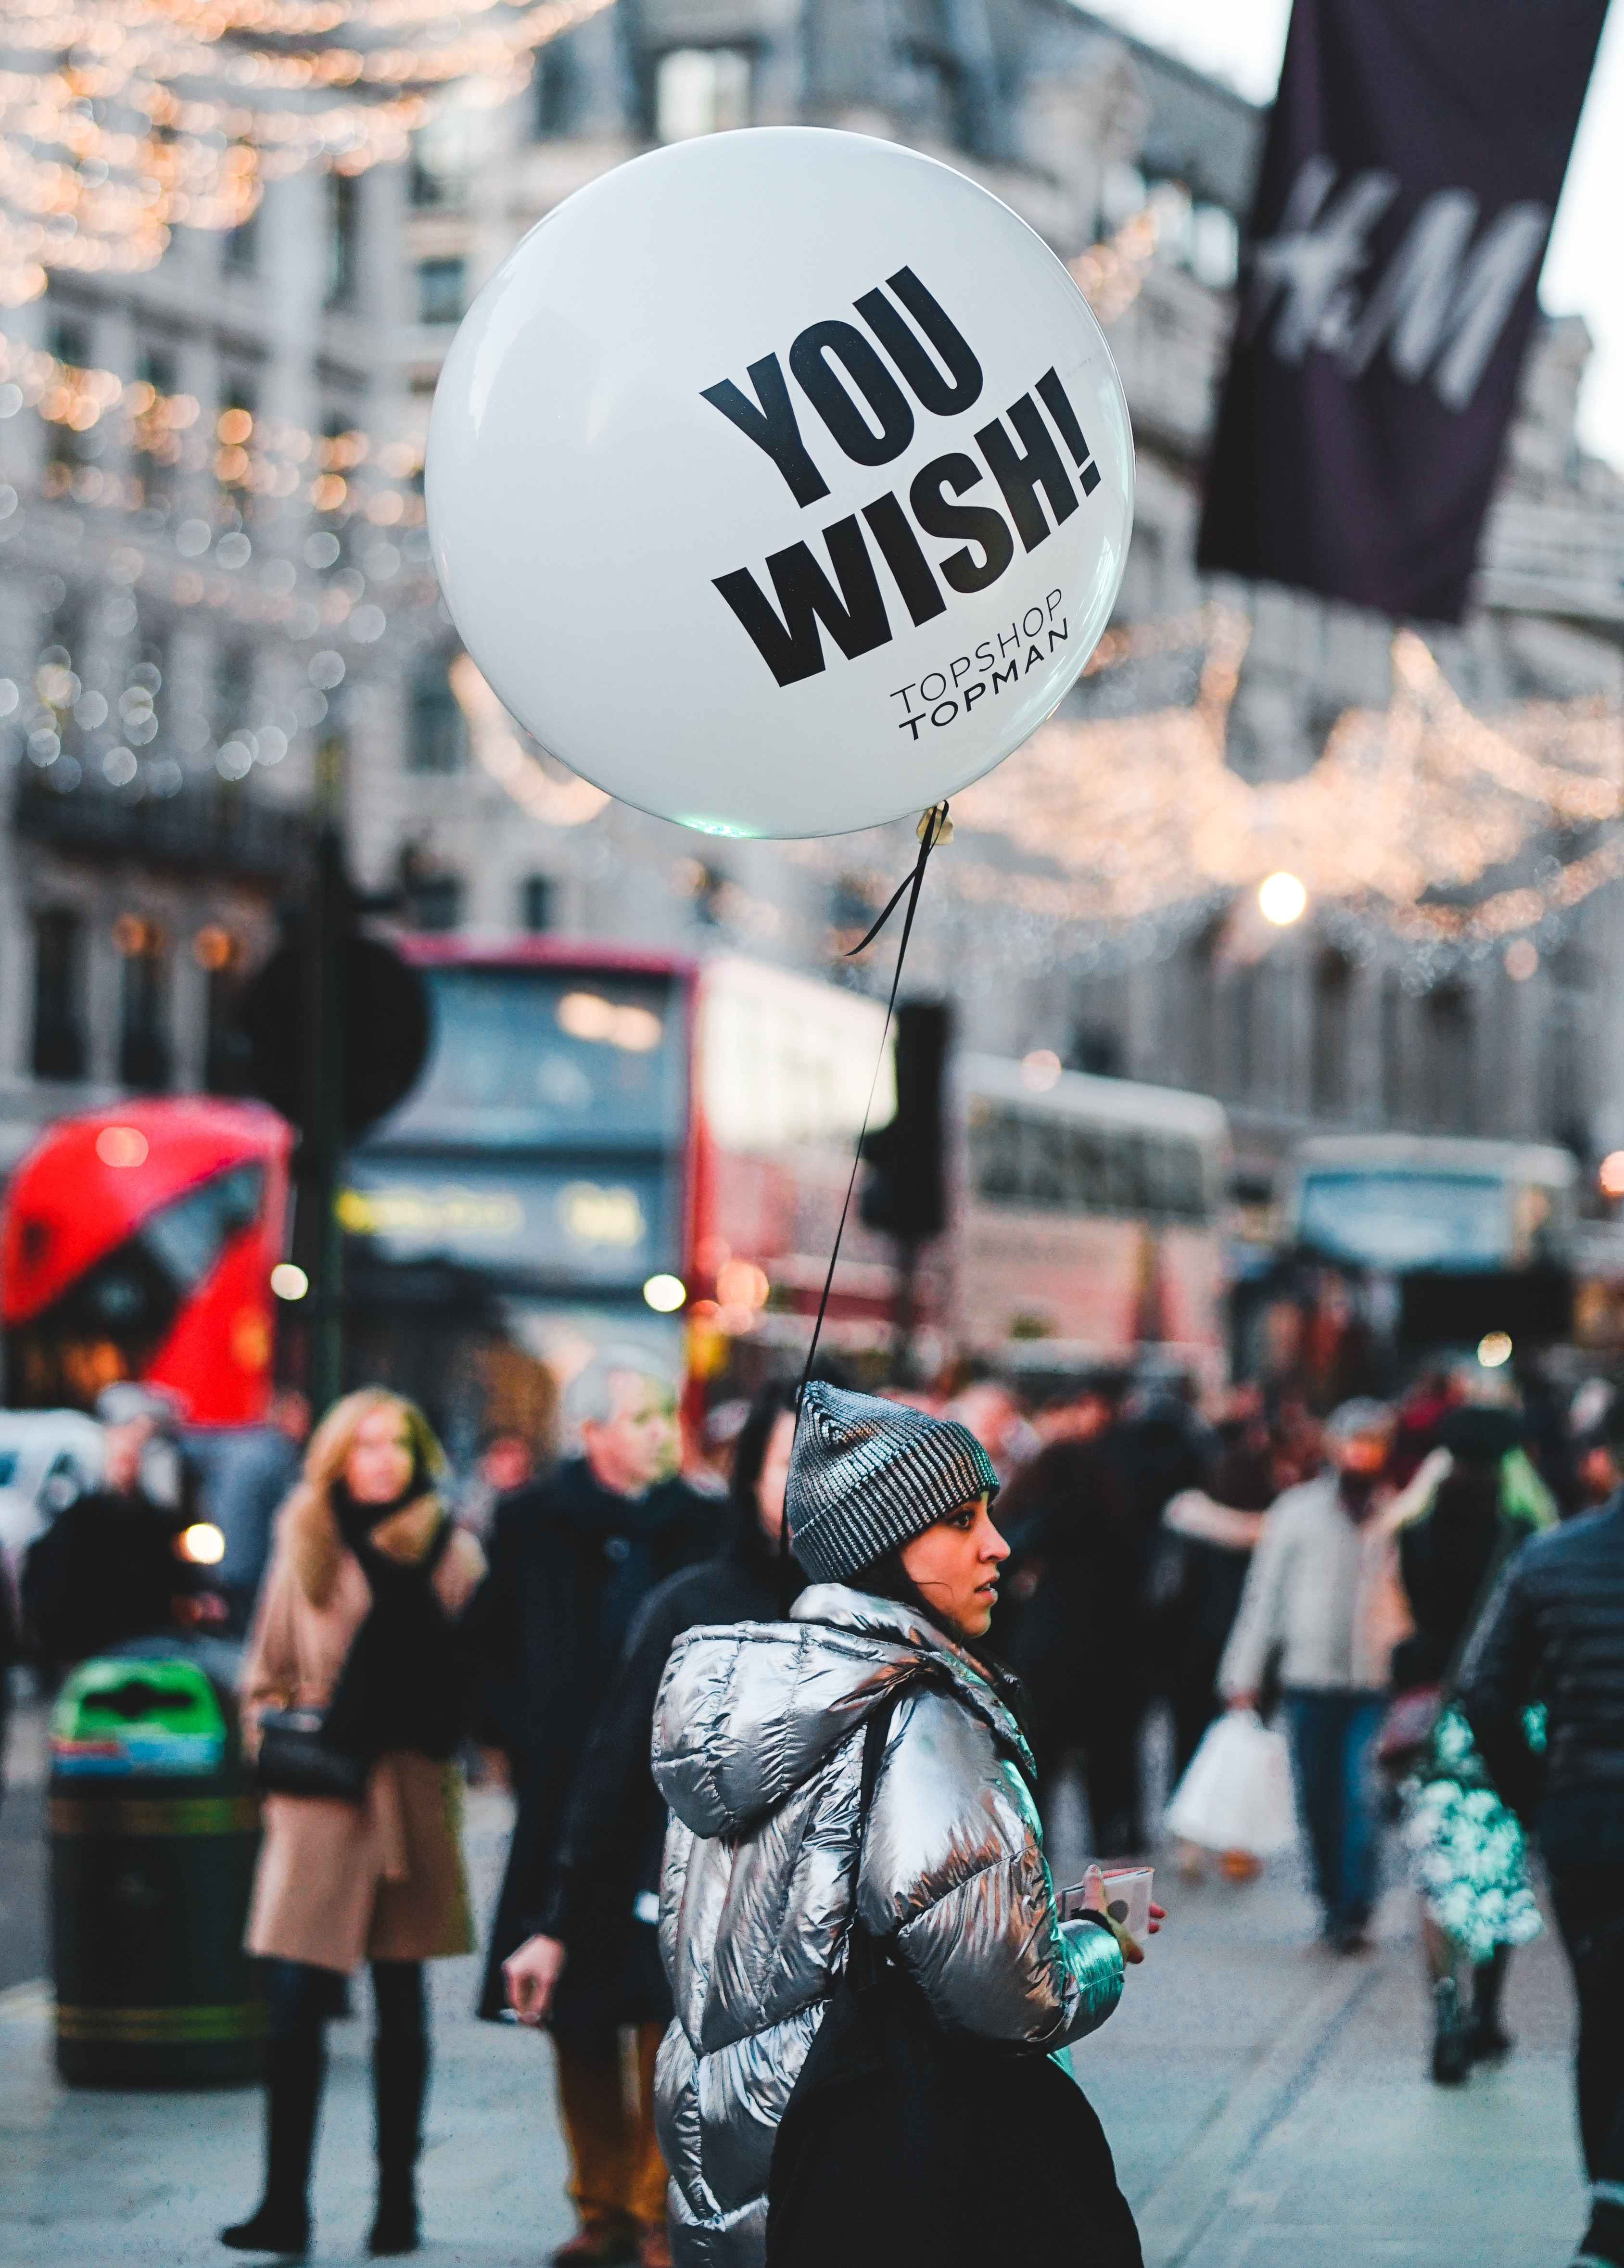 woman walking on street with people holding balloon at daytime